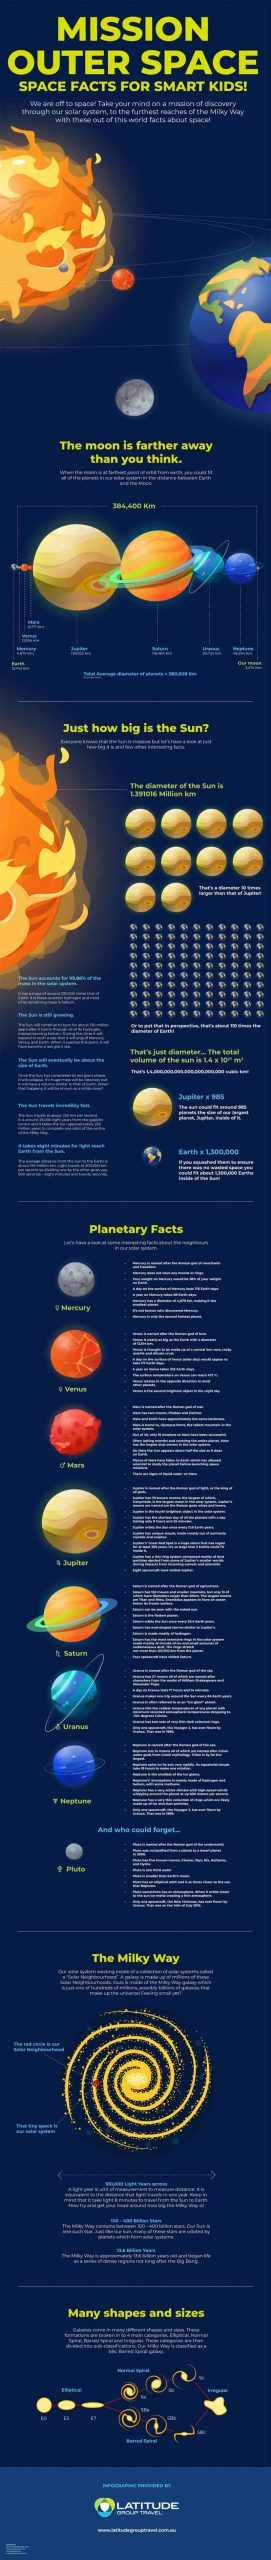 101 Space Facts For Smart Kids